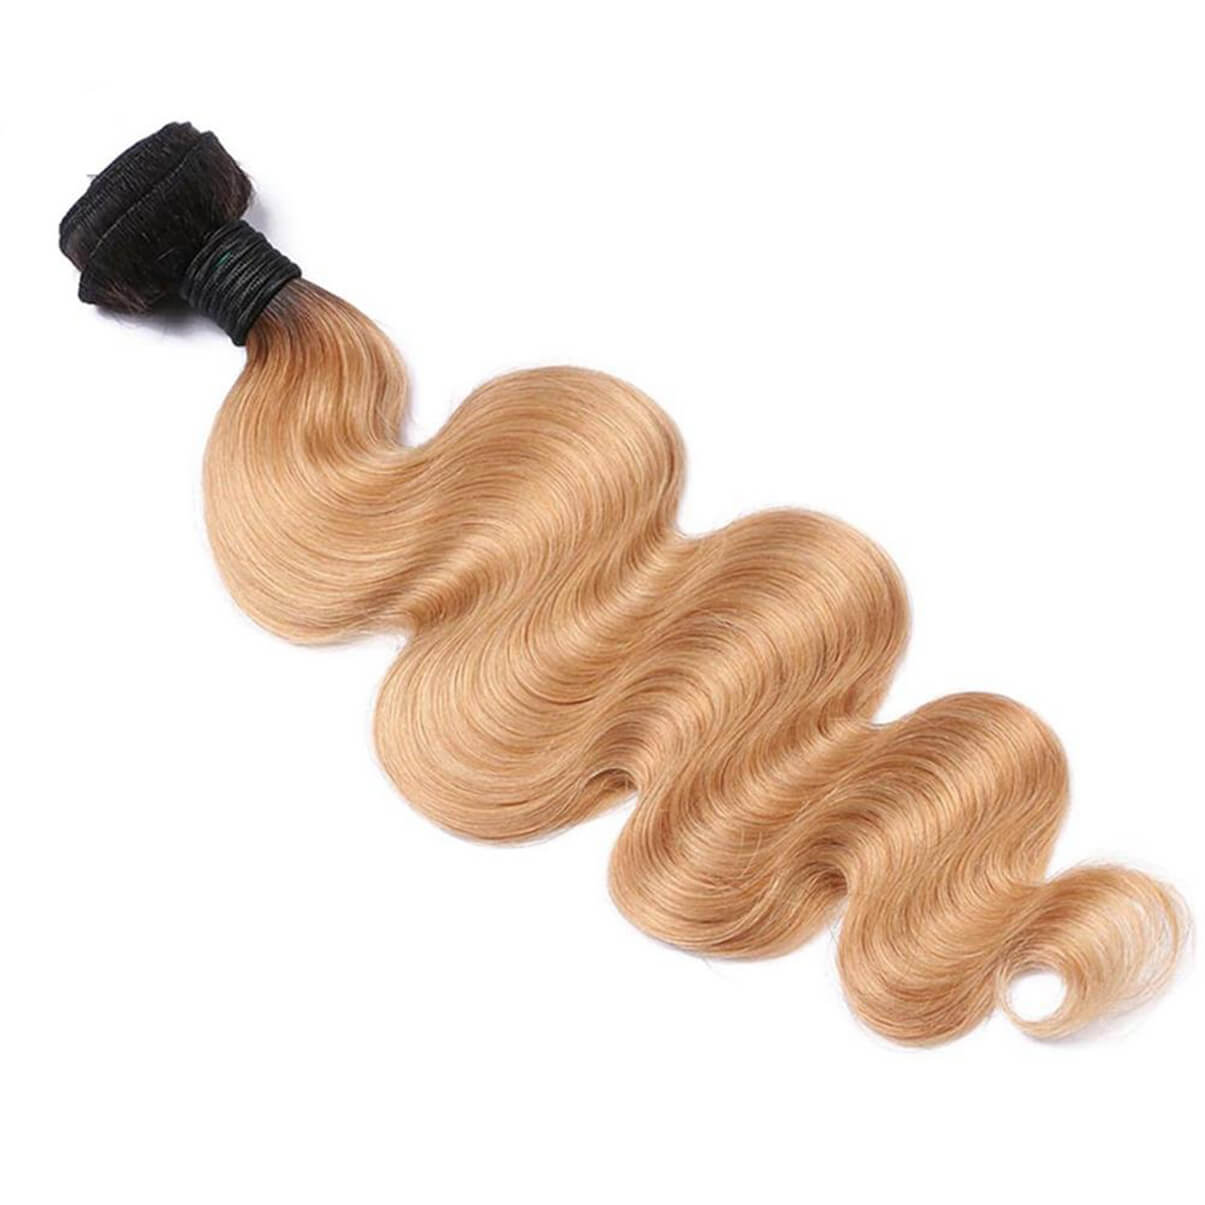 Lakihair 8A 1B/27 Blonde Ombre 3 Bundles Body Wave Virgin Brazilian Human Hair Extensions